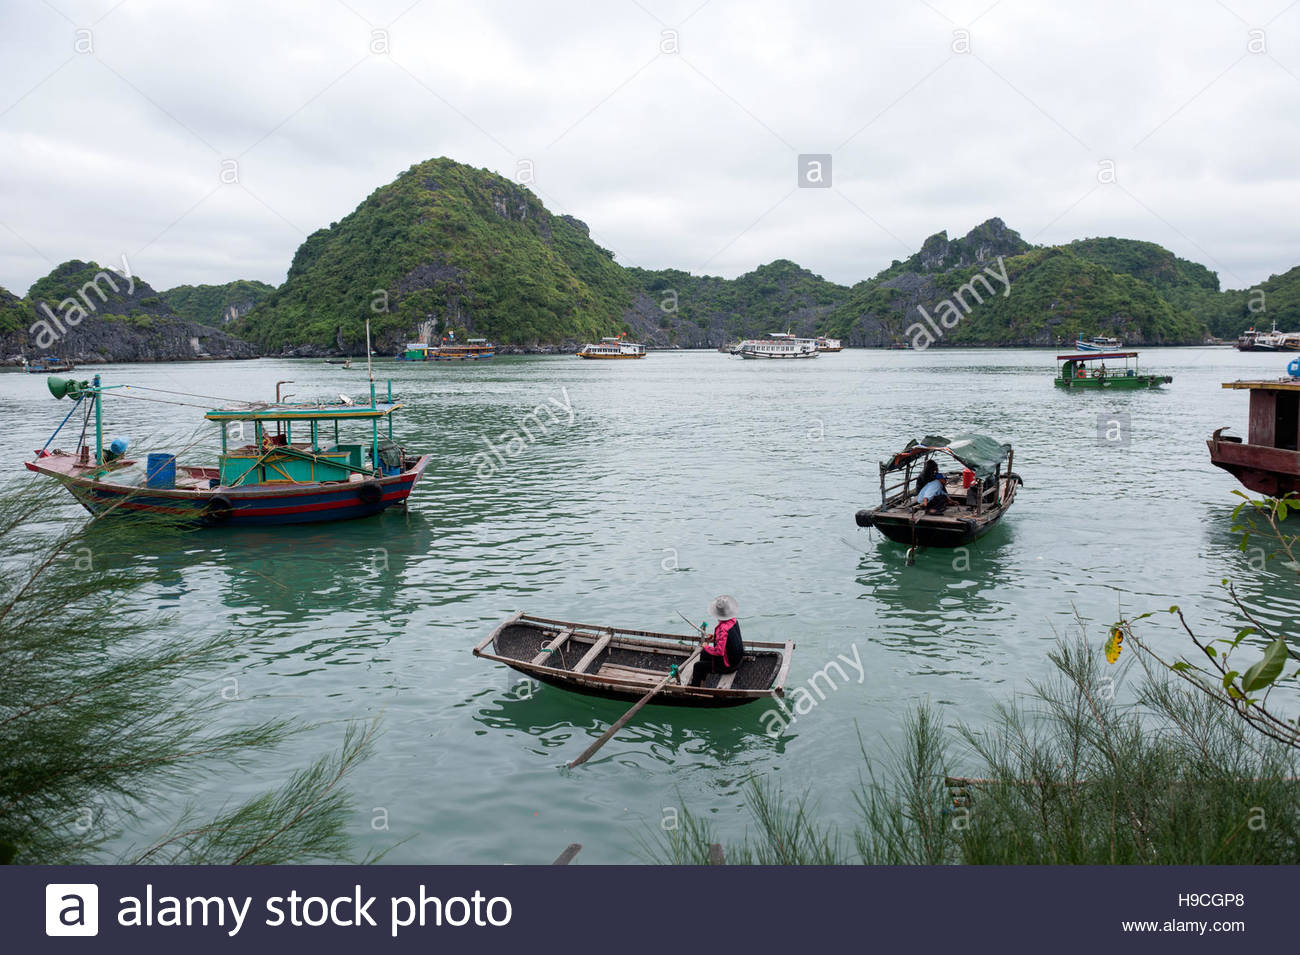 Cat Ba Vietnam Ferries and watertaxis ferry passengers to the island from fisheries and fish farms along the coast - Stock Image